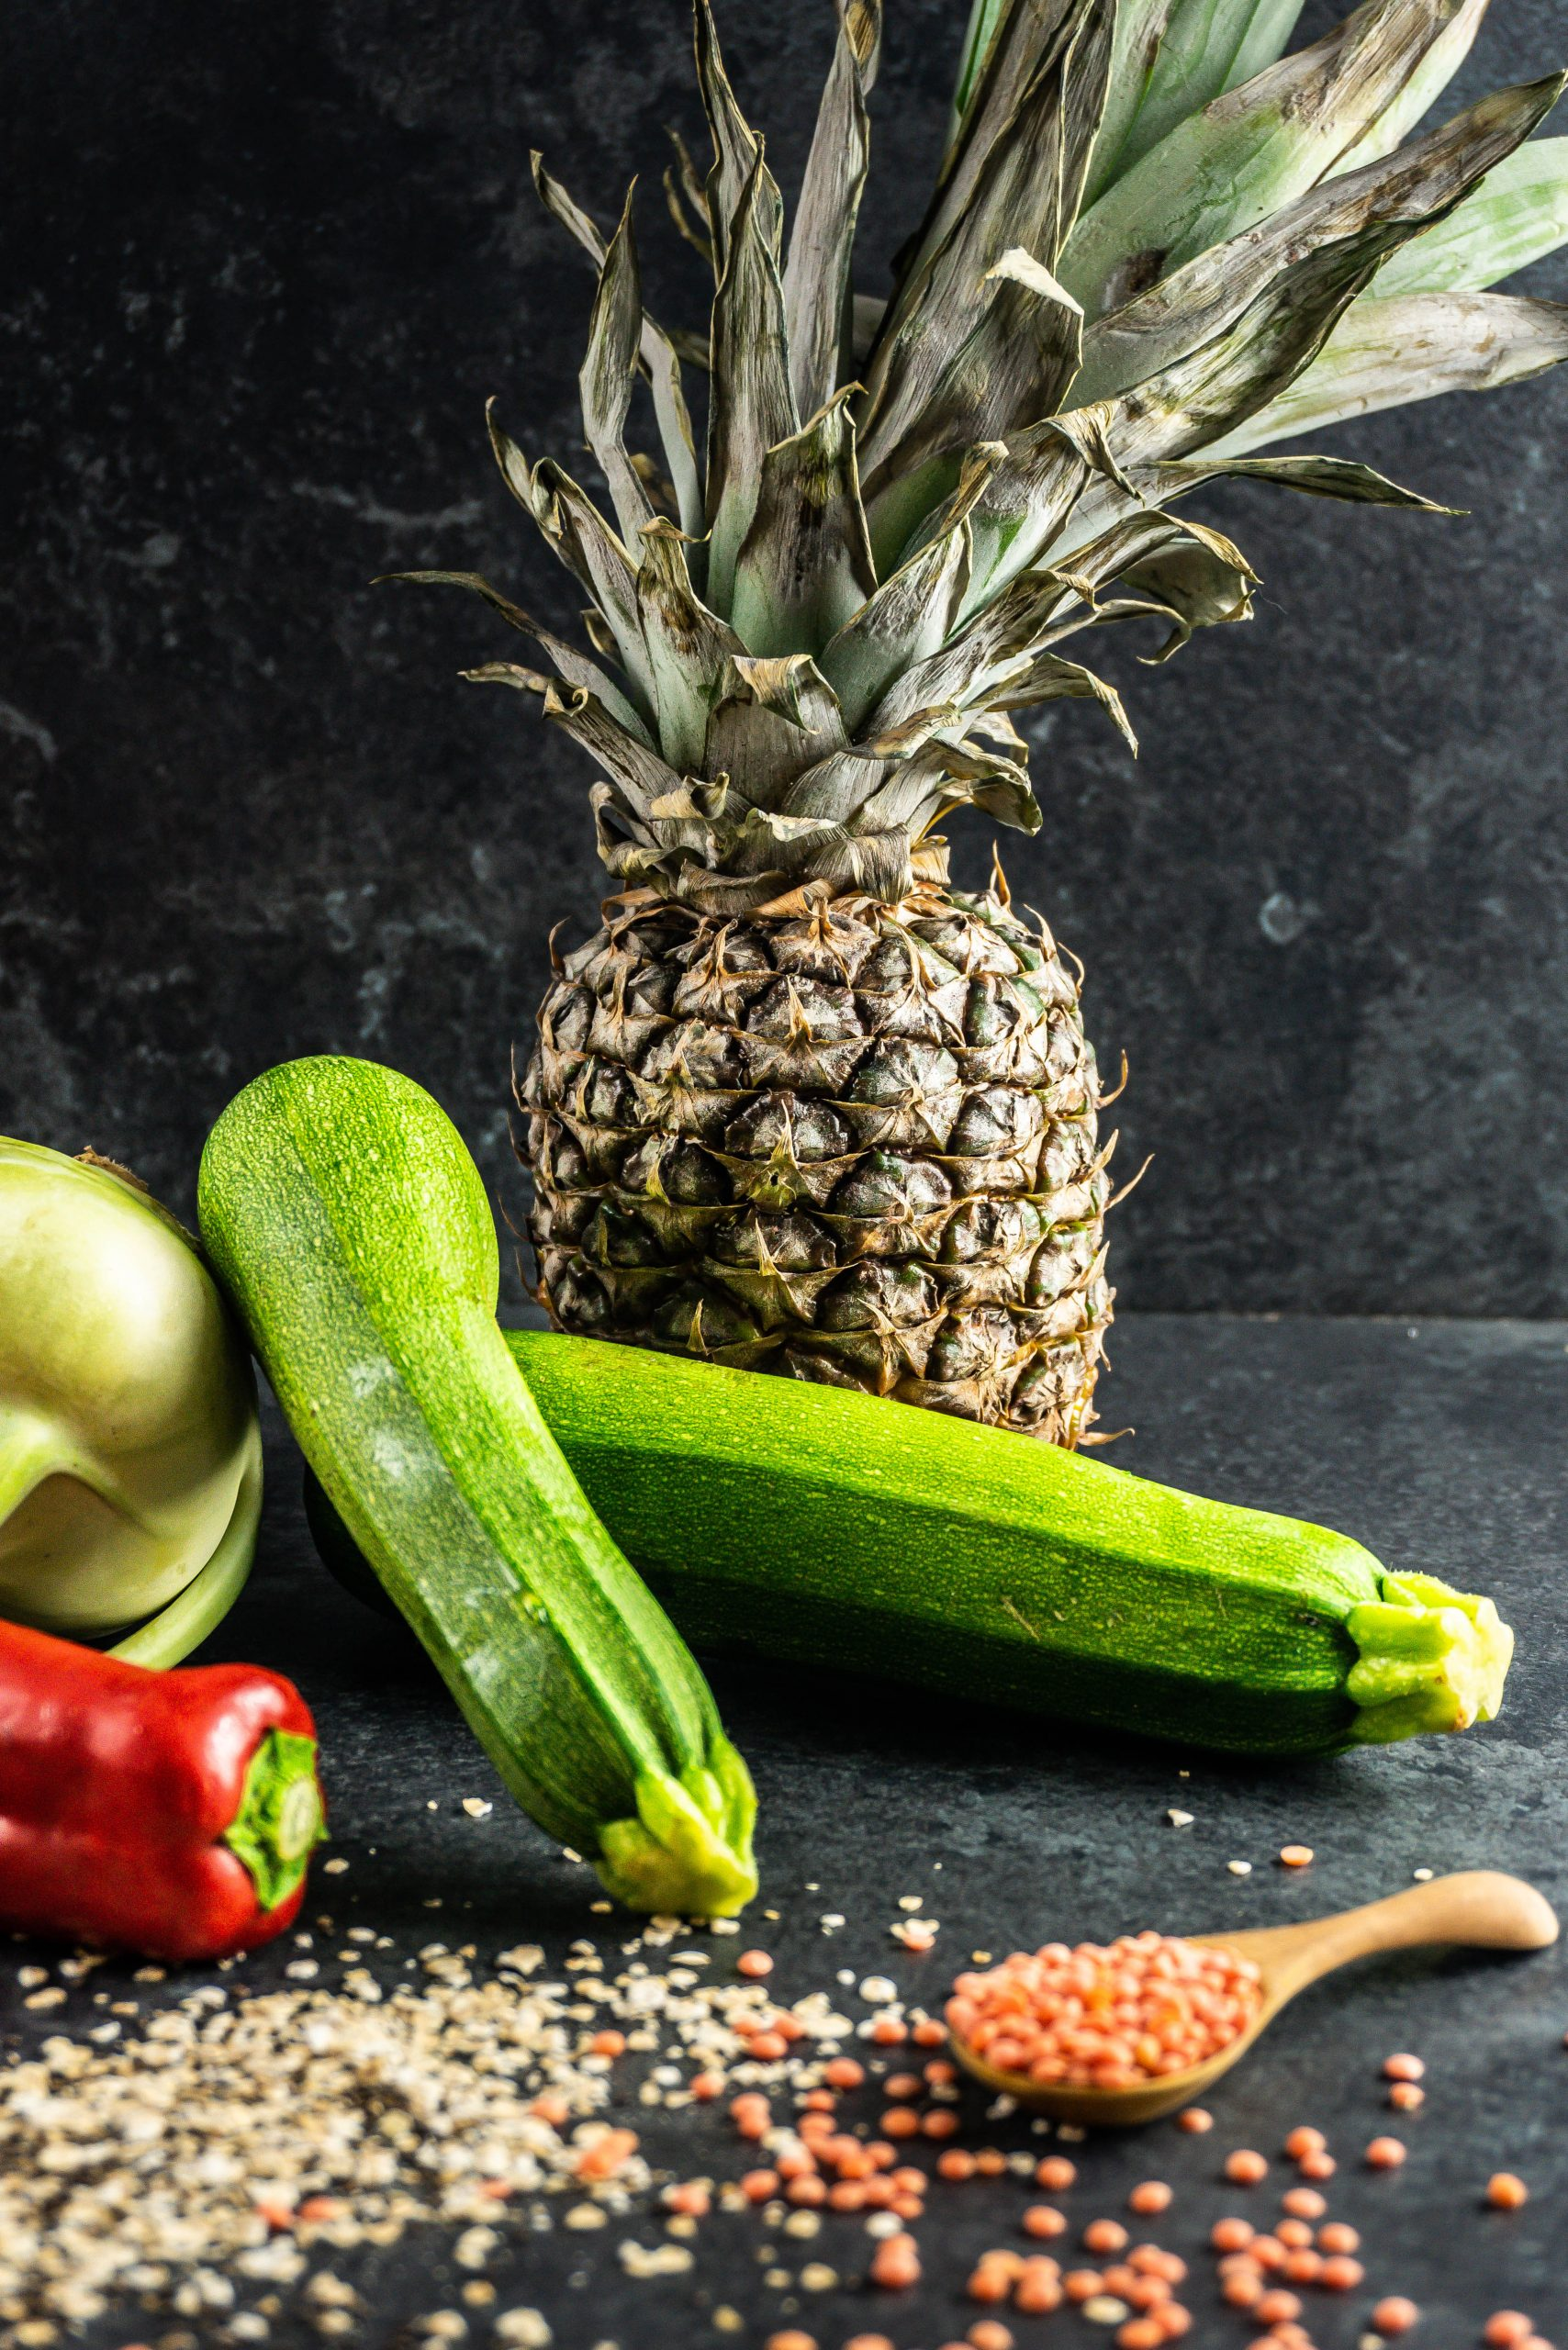 Courgettes and pineapple in focus, surrounded by other vegtables